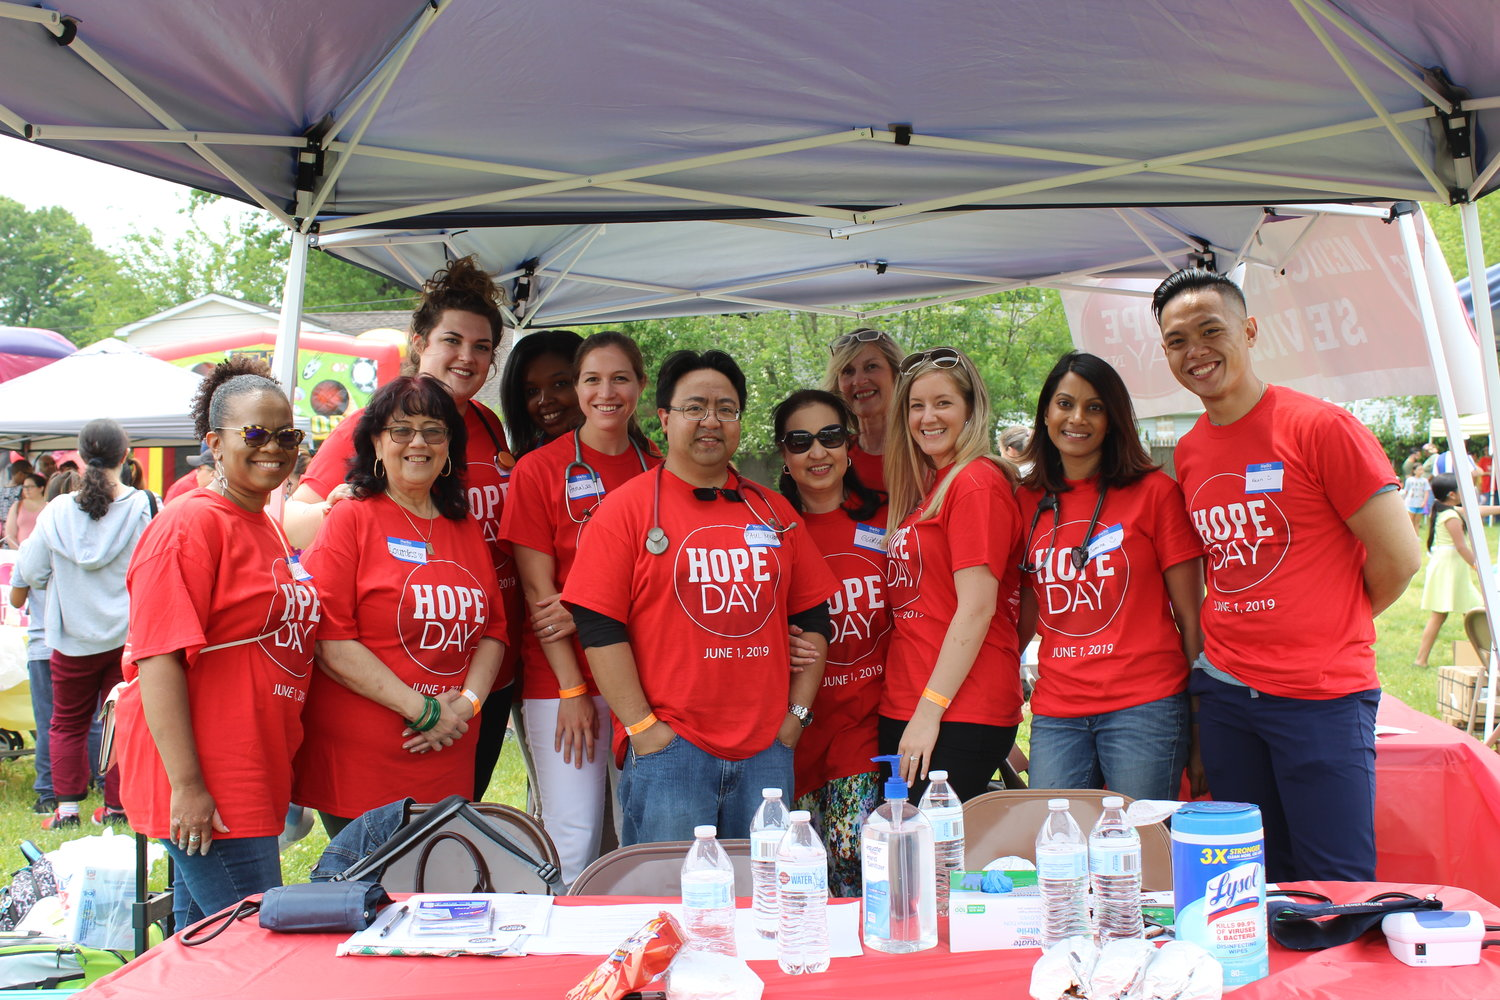 New Hope Church and Shelter Rock Church, both in Westbury, held their annual Hope Day summer extravaganza on June 1. Above is a group of volunteers from the festival's medical and health services booth.